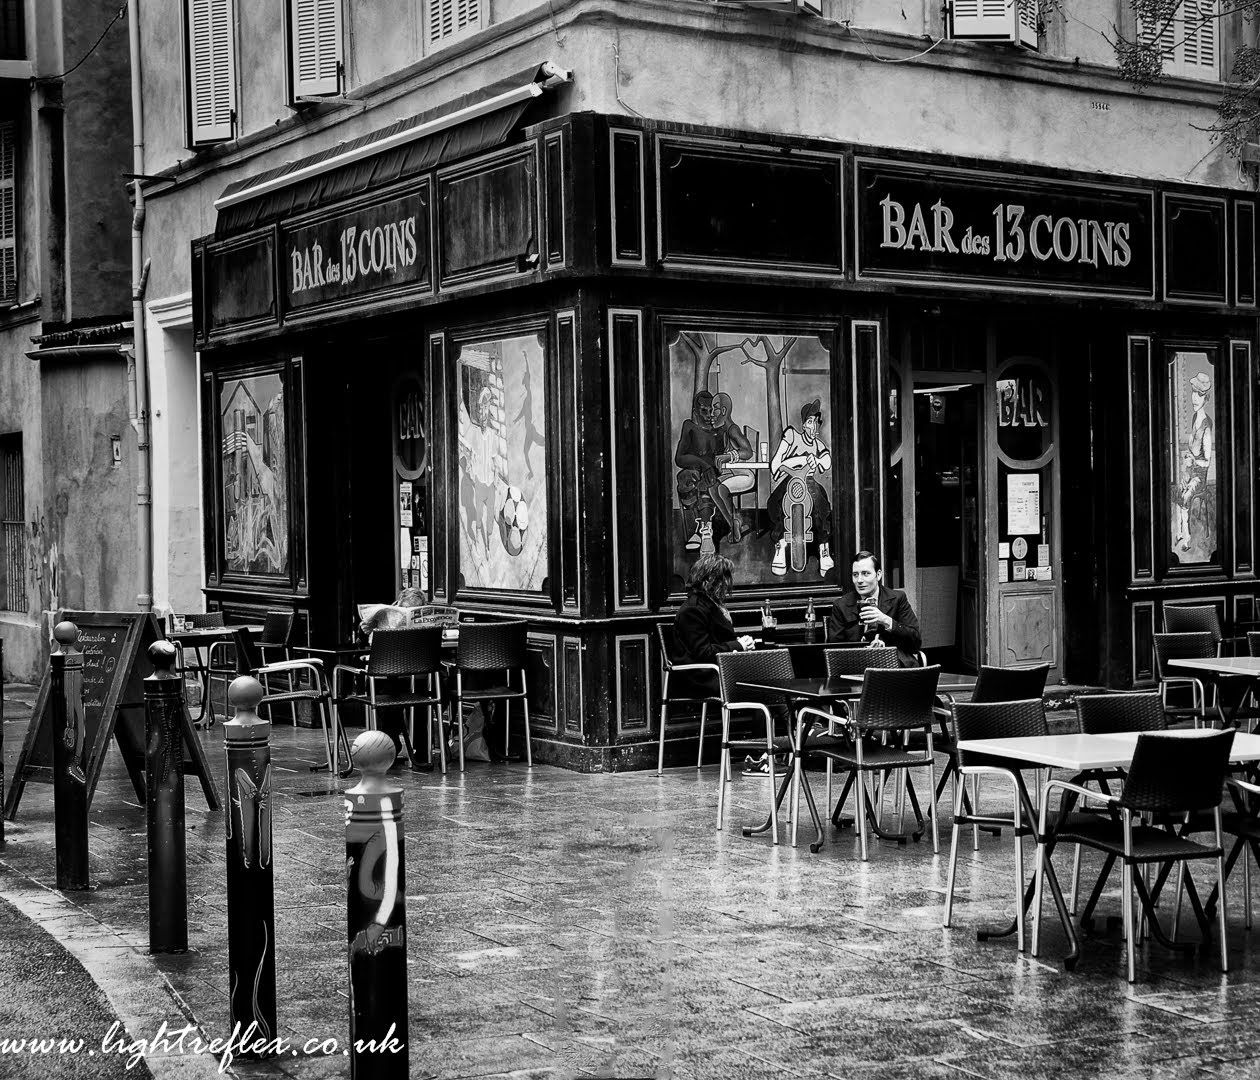 My first video tutorial on how to process street images to bw my first video tutorial on how to process street images to bw using lightroom nik processing baditri Gallery